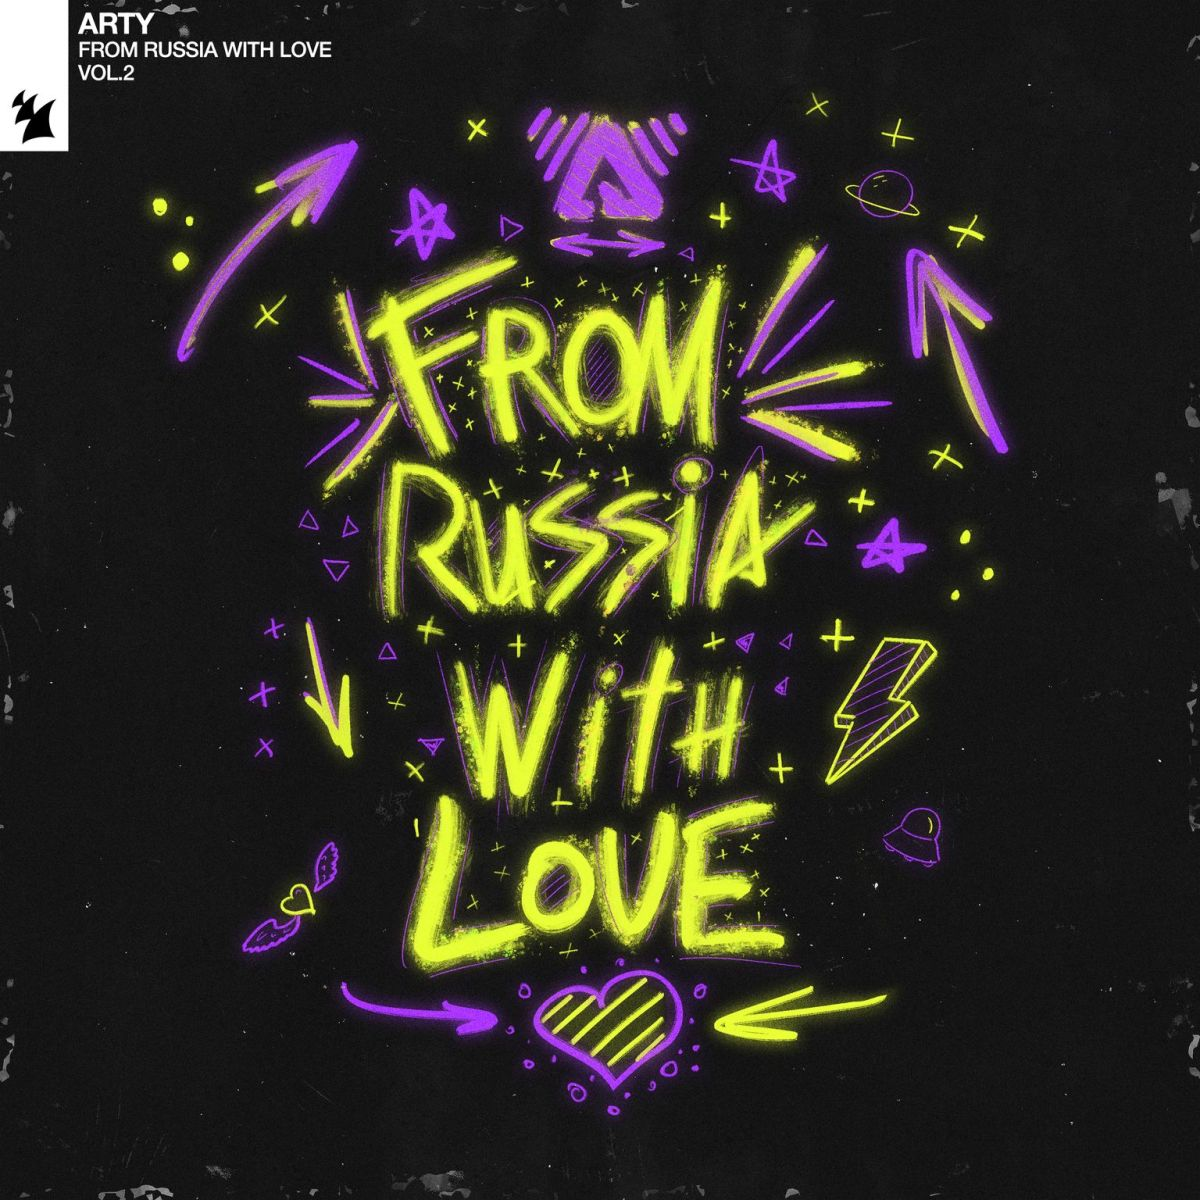 ARTY RELEASES SECOND VOLUME OF 'FROM RUSSIA WITH LOVE' – The ...